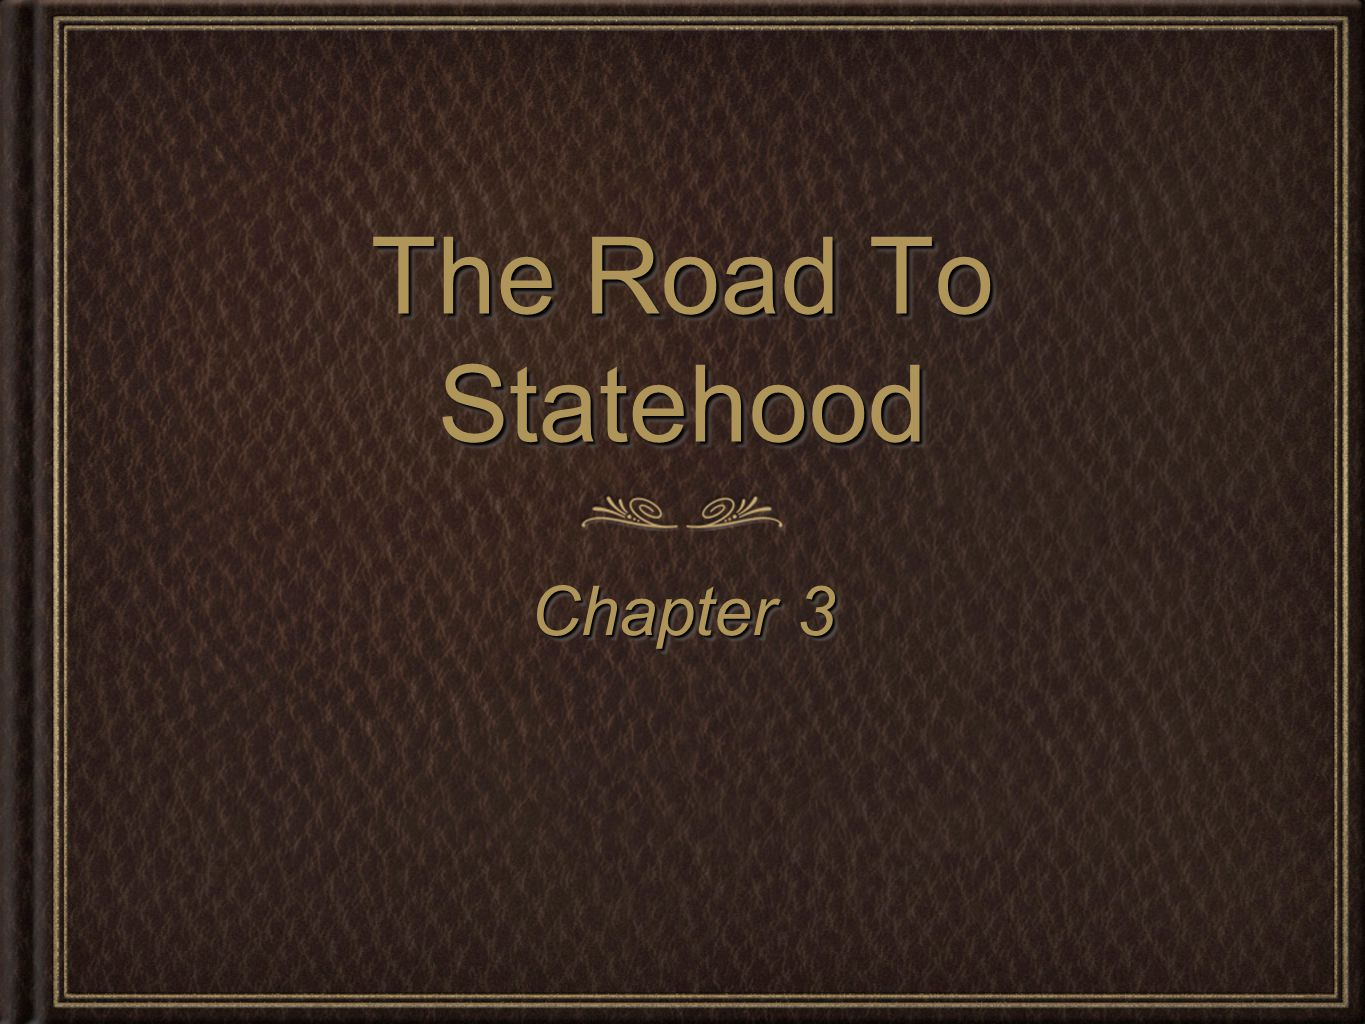 The Road To Statehood Chapter 3